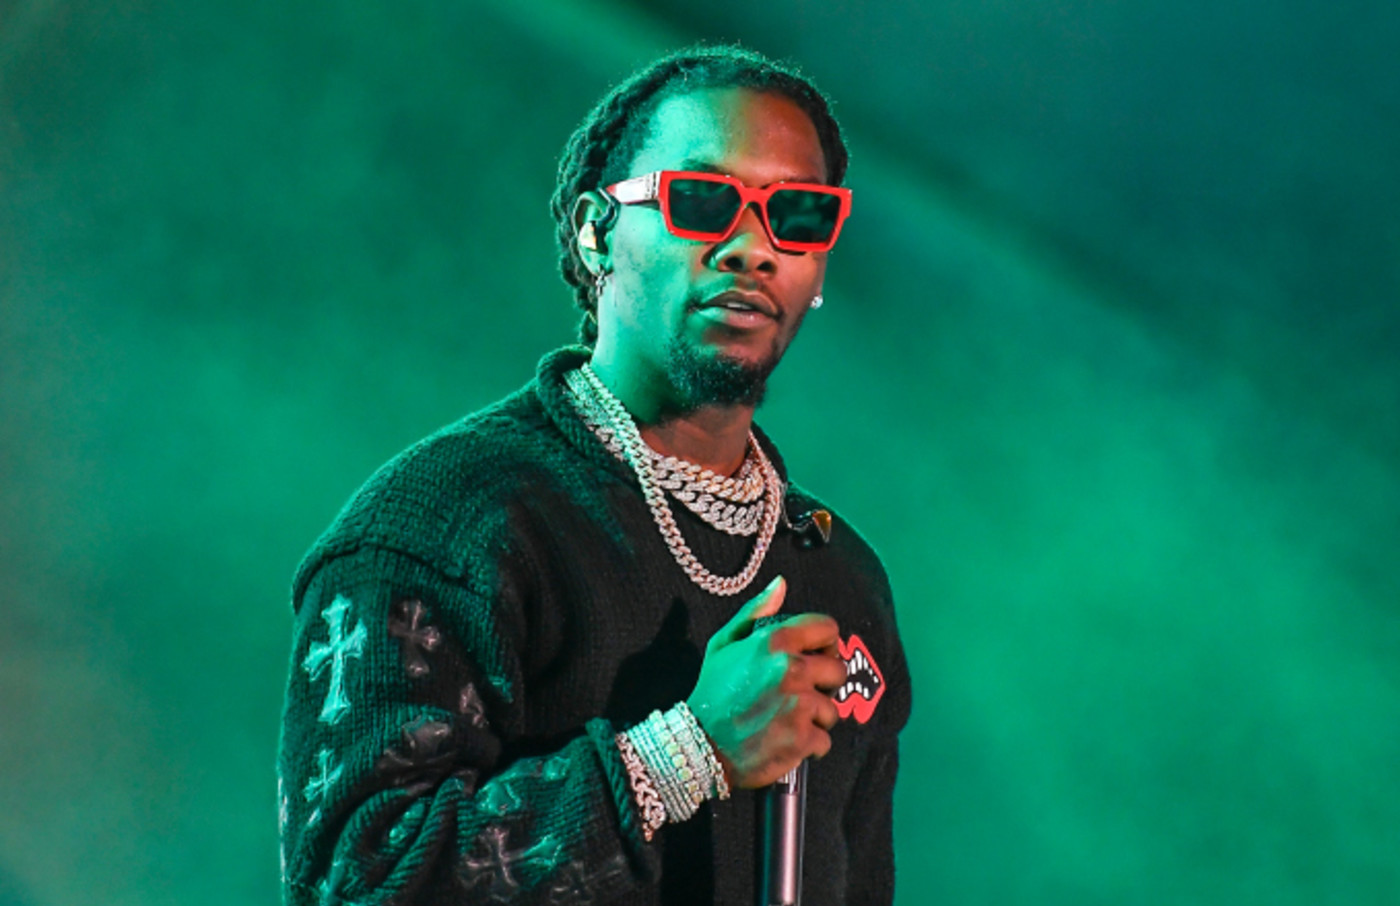 Rapper Offset of Migos performs at the 2019 Rolling Loud Music Festival